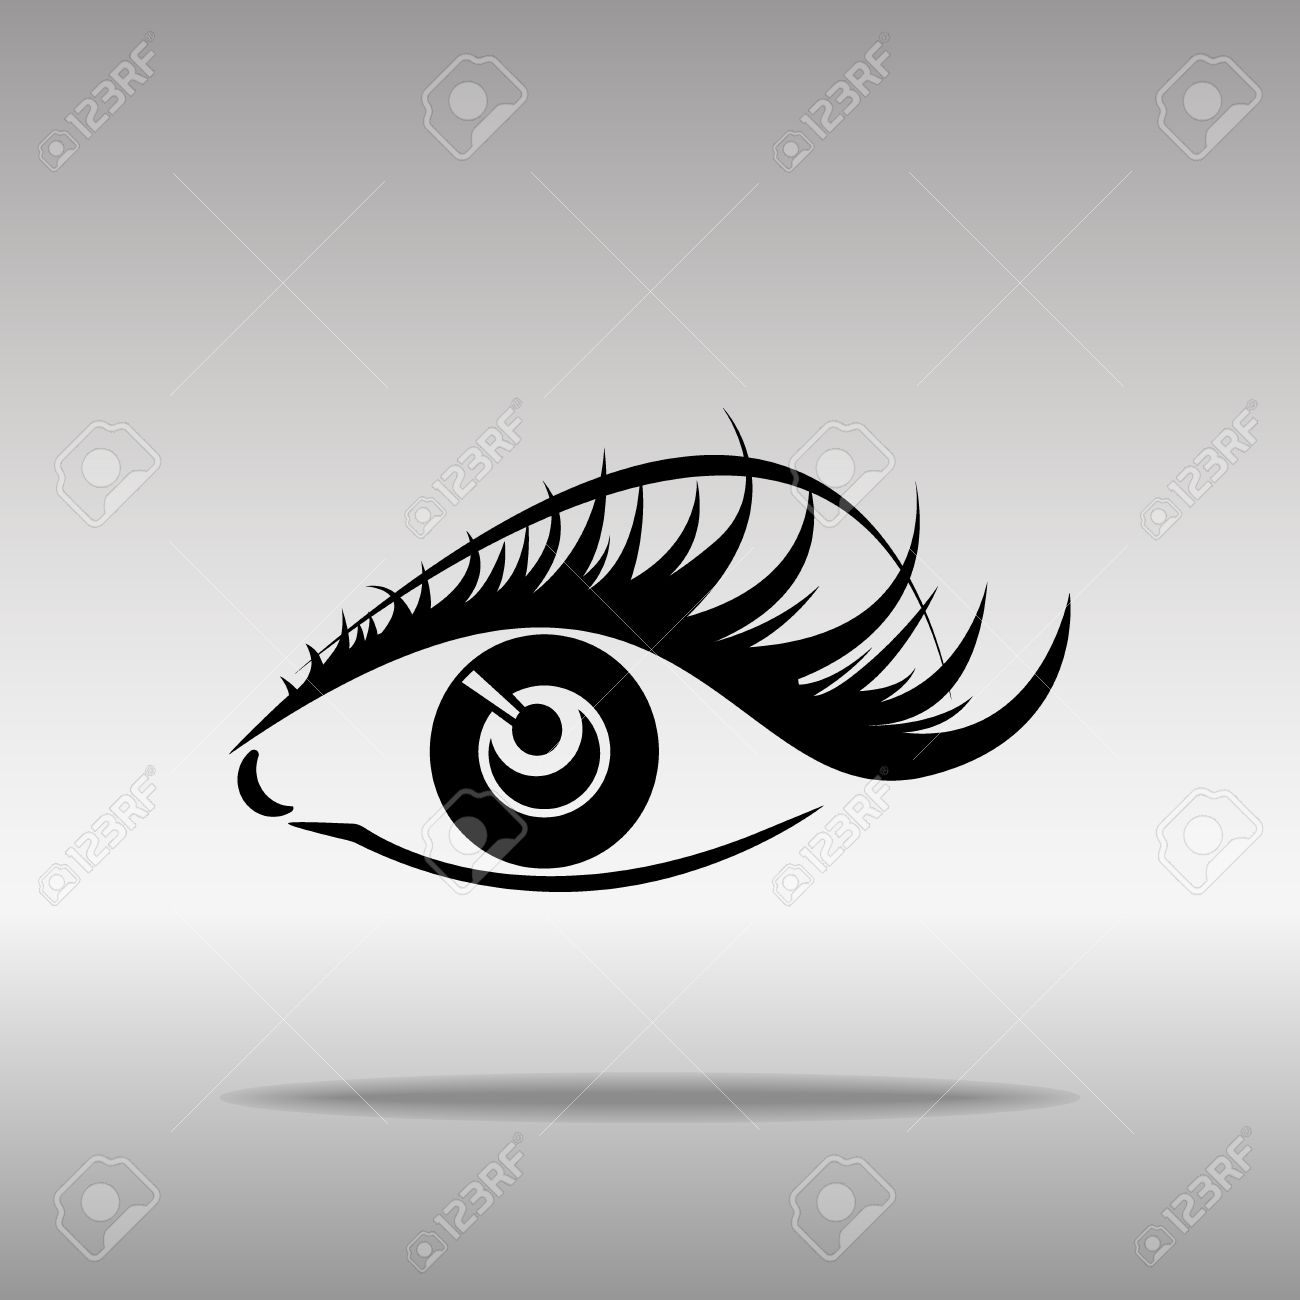 Black silhouettes of eyebrows and eyes isolated on white background. Open and closed eyes. Icon button symbol concept high quality on the gray background - 68022432